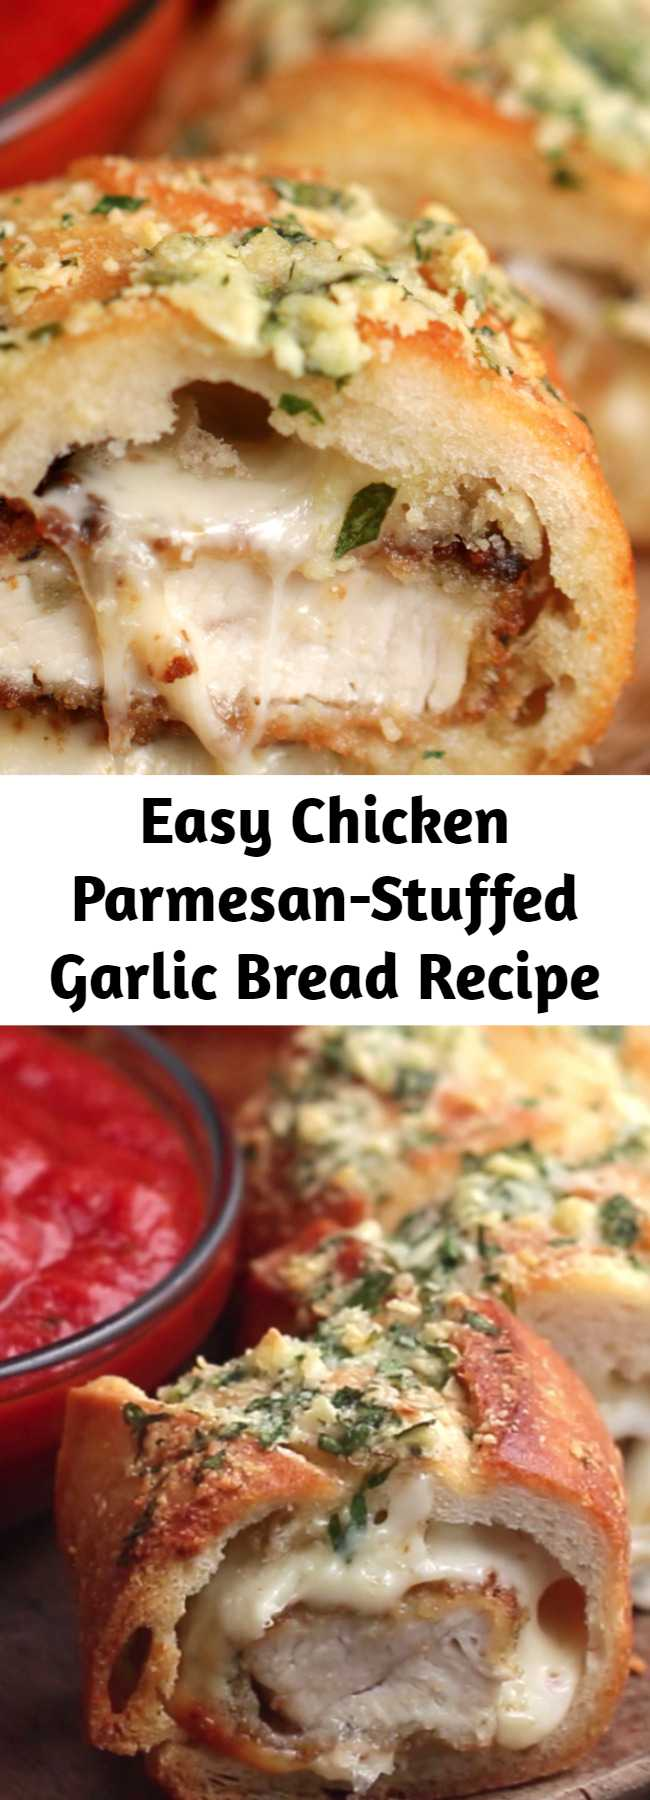 Easy Chicken Parmesan-Stuffed Garlic Bread Recipe - Super easy to stuff the bread just make sure you get a big baguette and not a little one. Loved it!